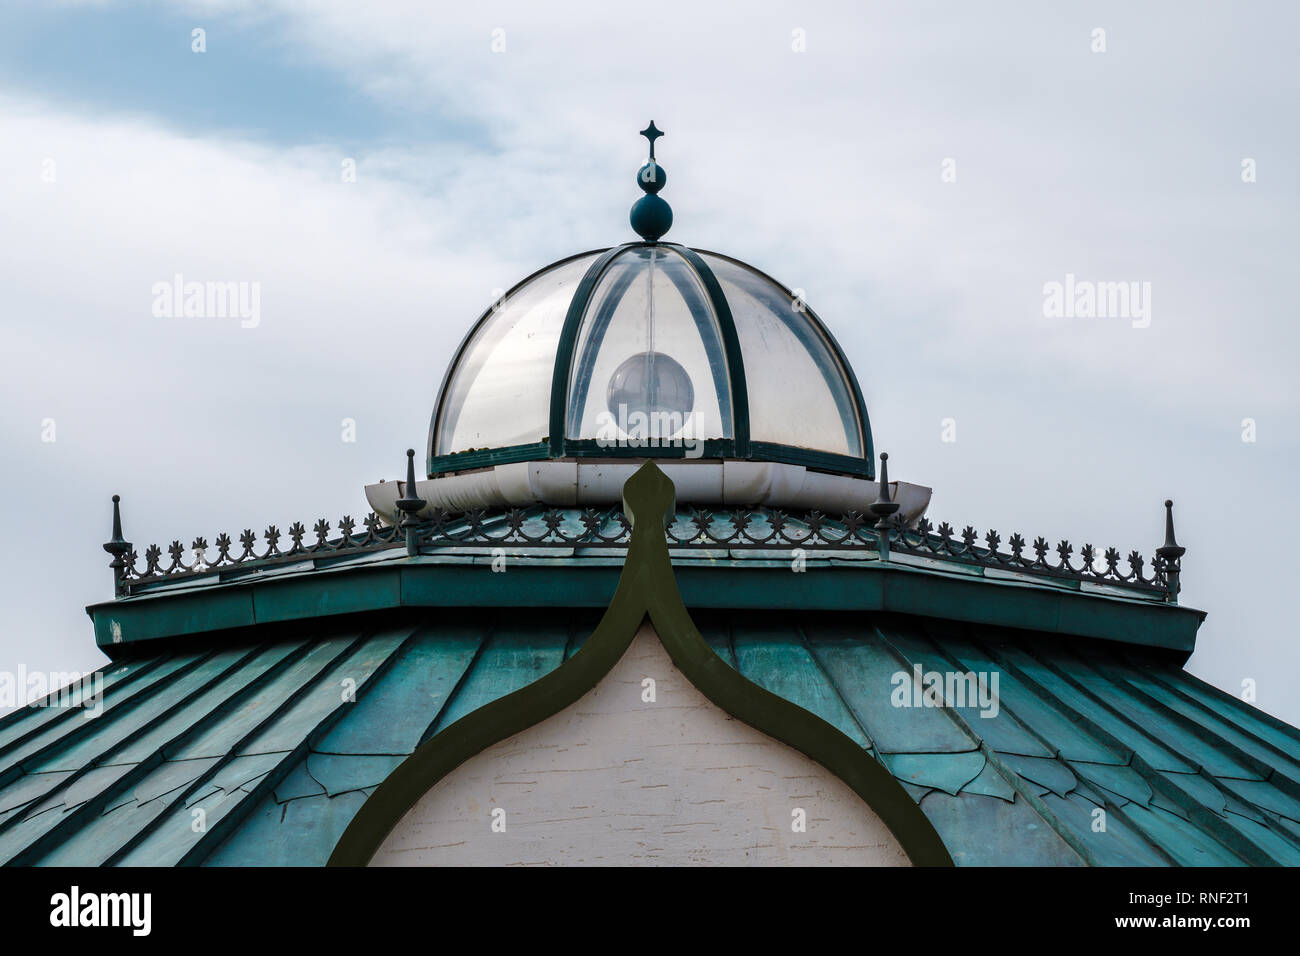 Victorian style green roof and glass dome of a building in Rhyl's Children's Village on a cloudy day, Rhyl, Denbighshire, North Wales - Stock Image